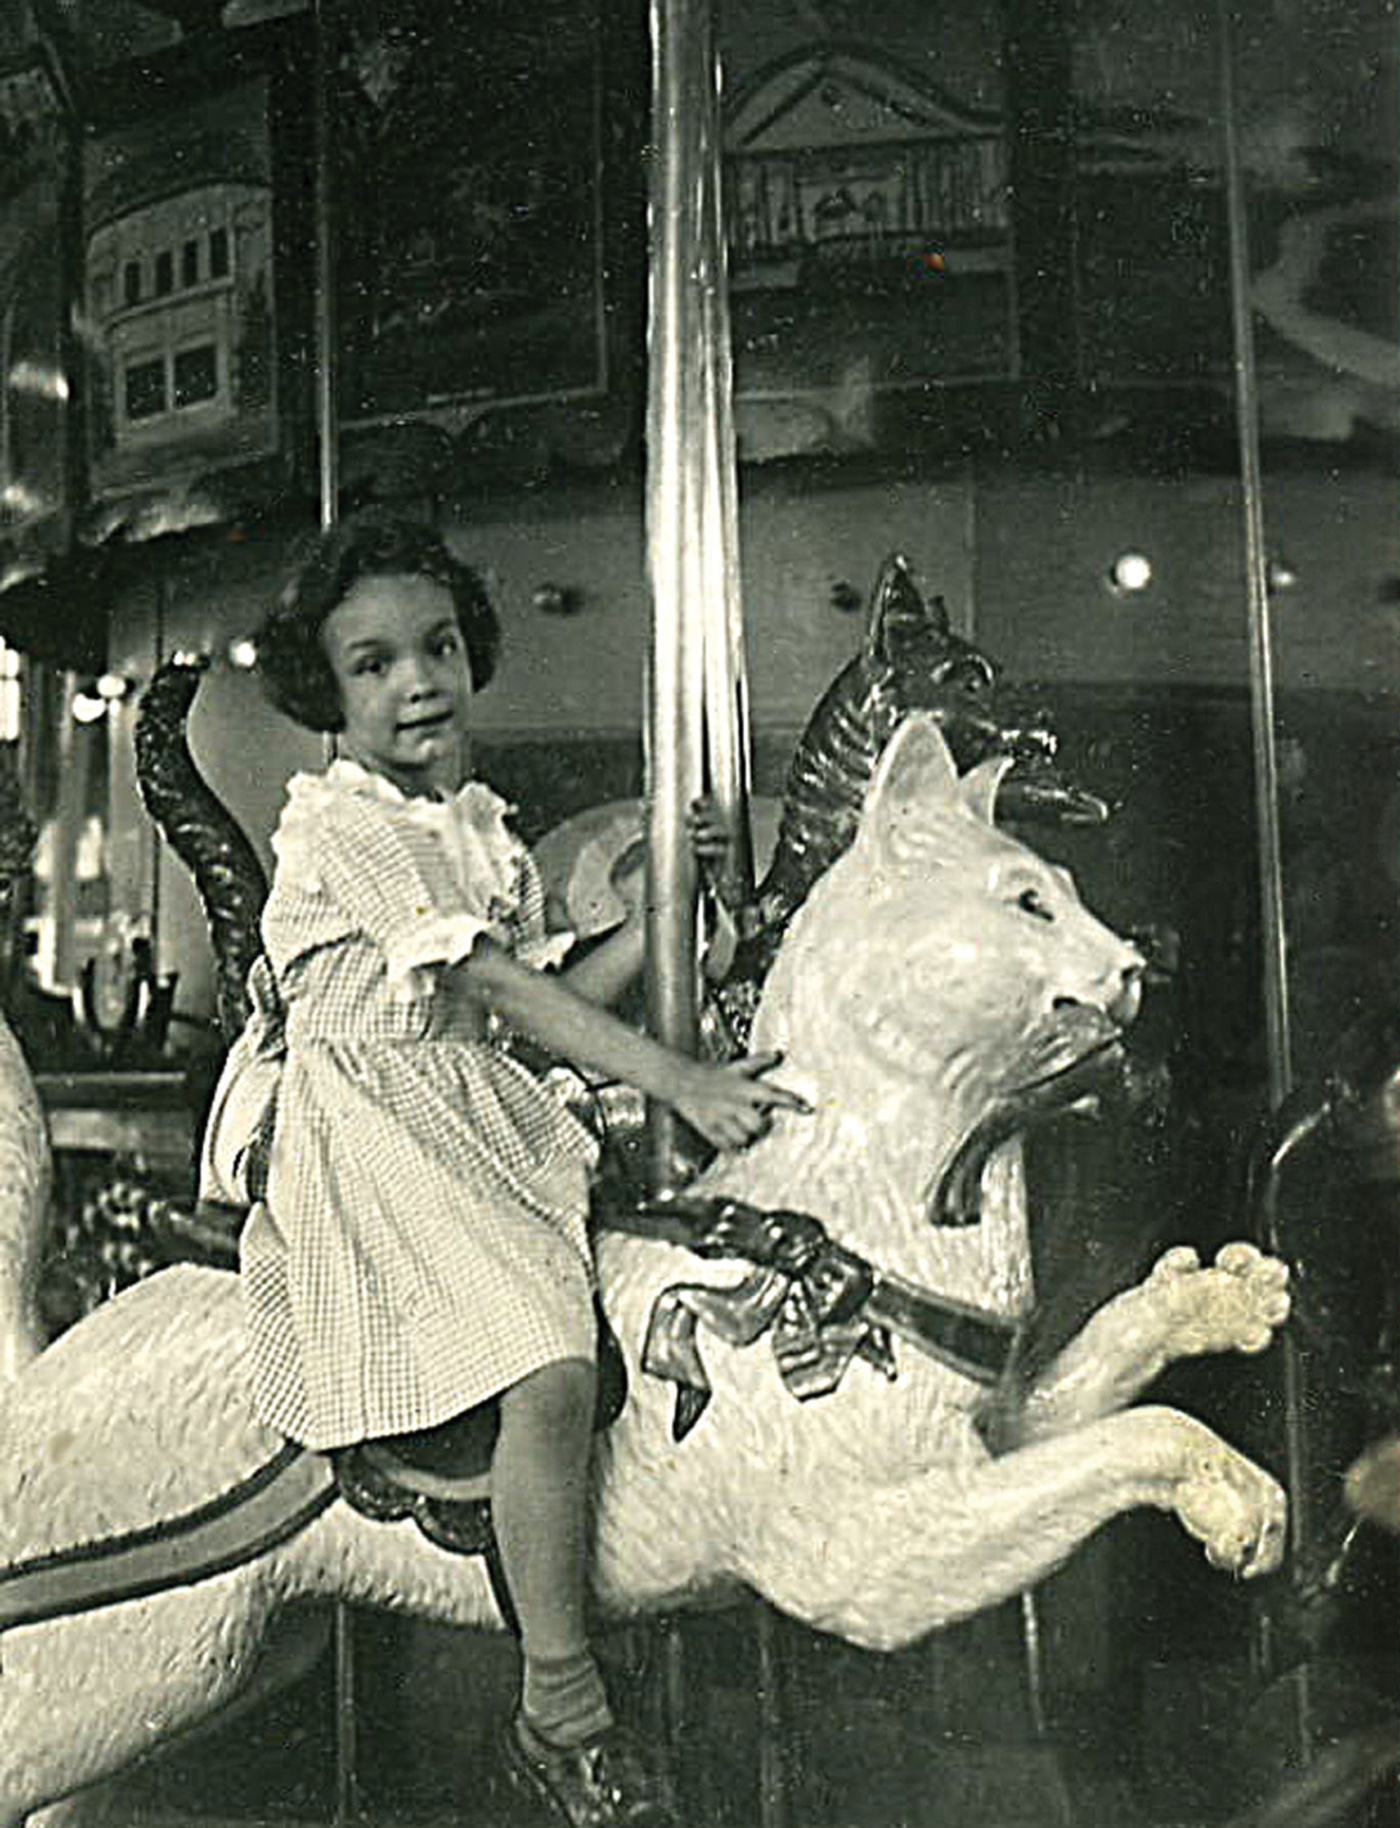 Dentzel-carousel-cat-Tolchester-Park-MD-1950-photo